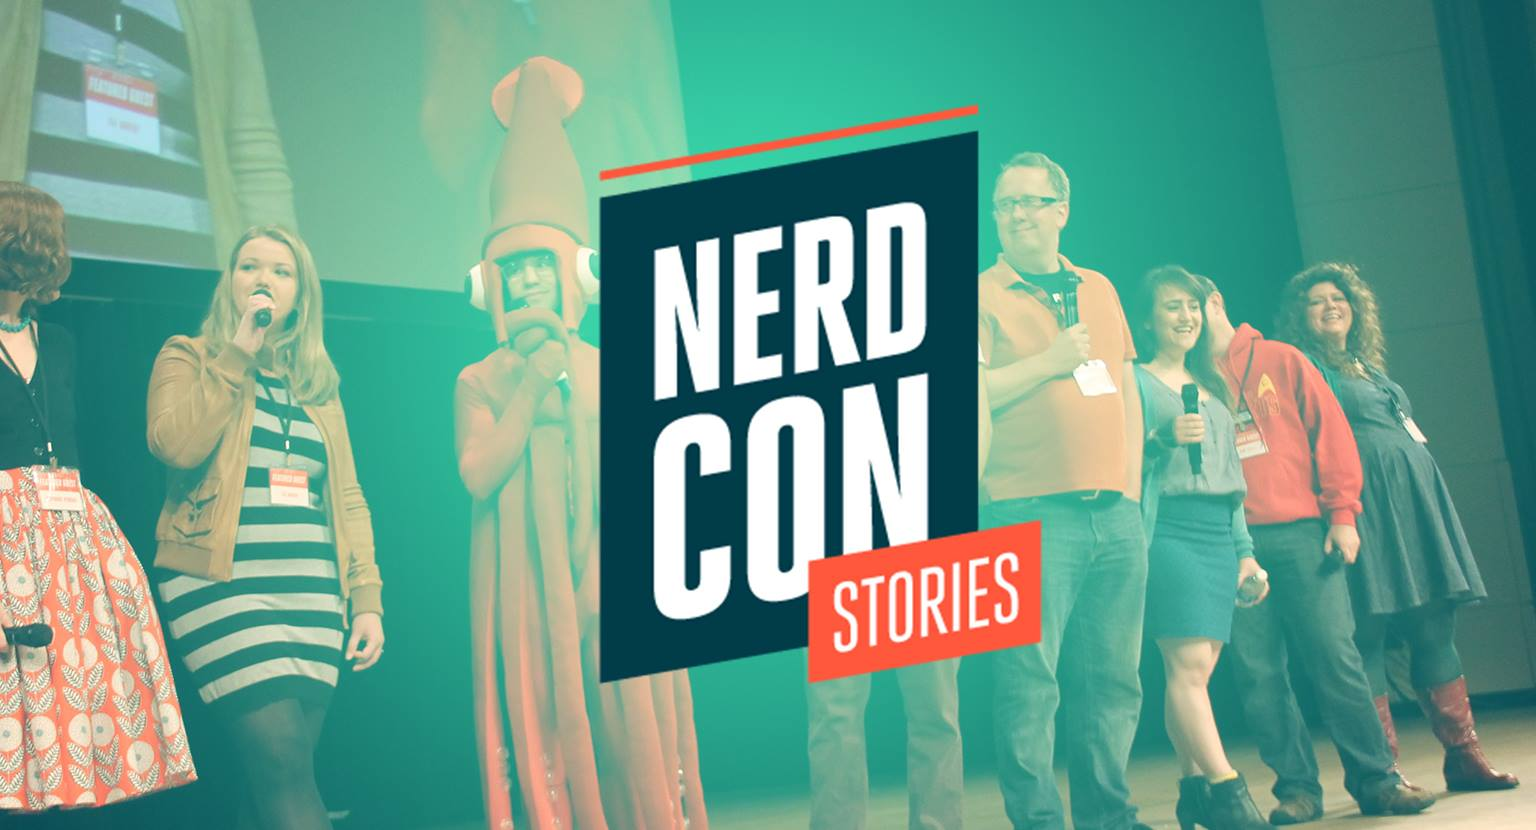 Find Me at #NerdConStories